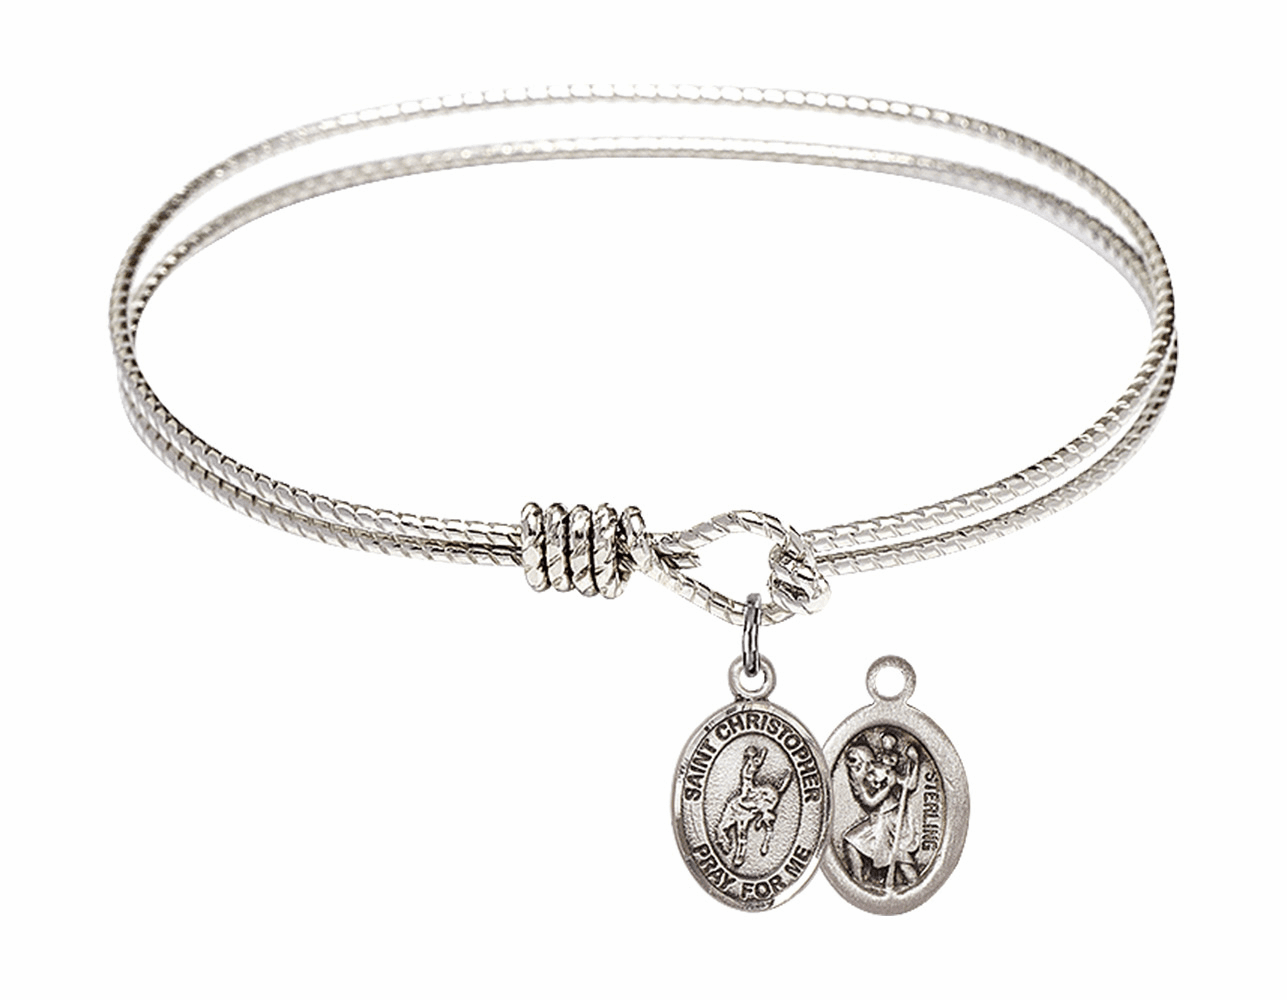 Twist Round Eye Hook St Christopher Rodeo Bangle Charm Bracelet by Bliss